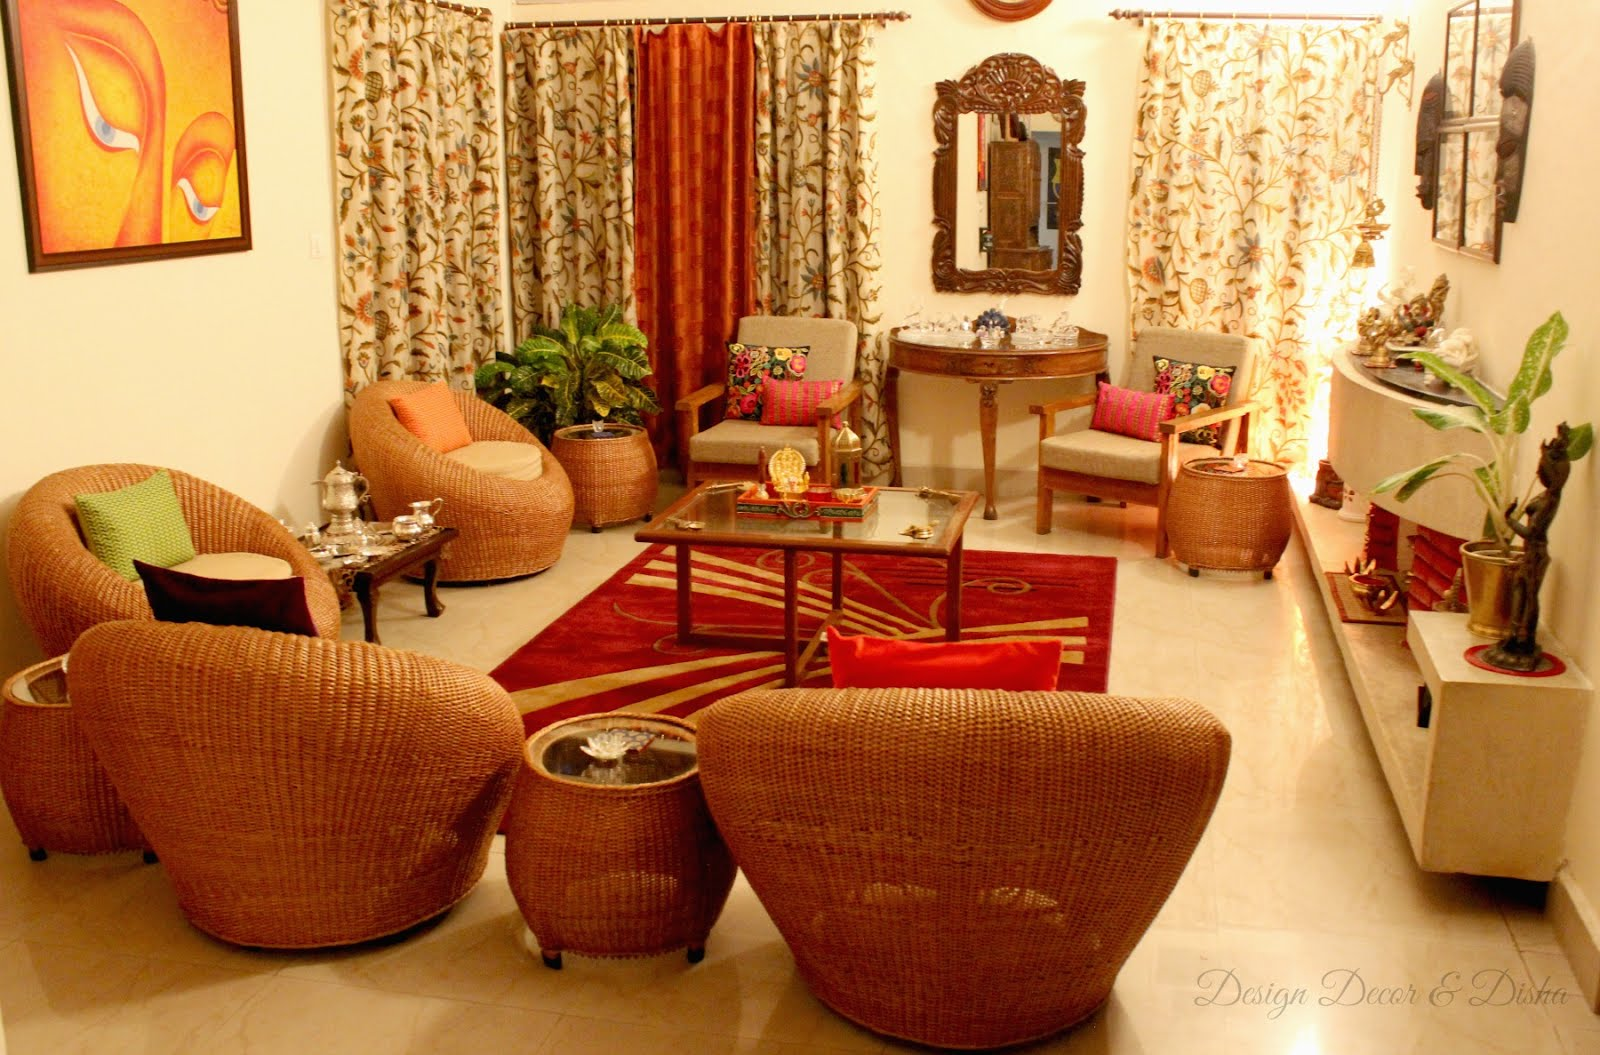 Design Decor Disha An Indian Design Decor Blog Home Tour Parul Chaturvedi